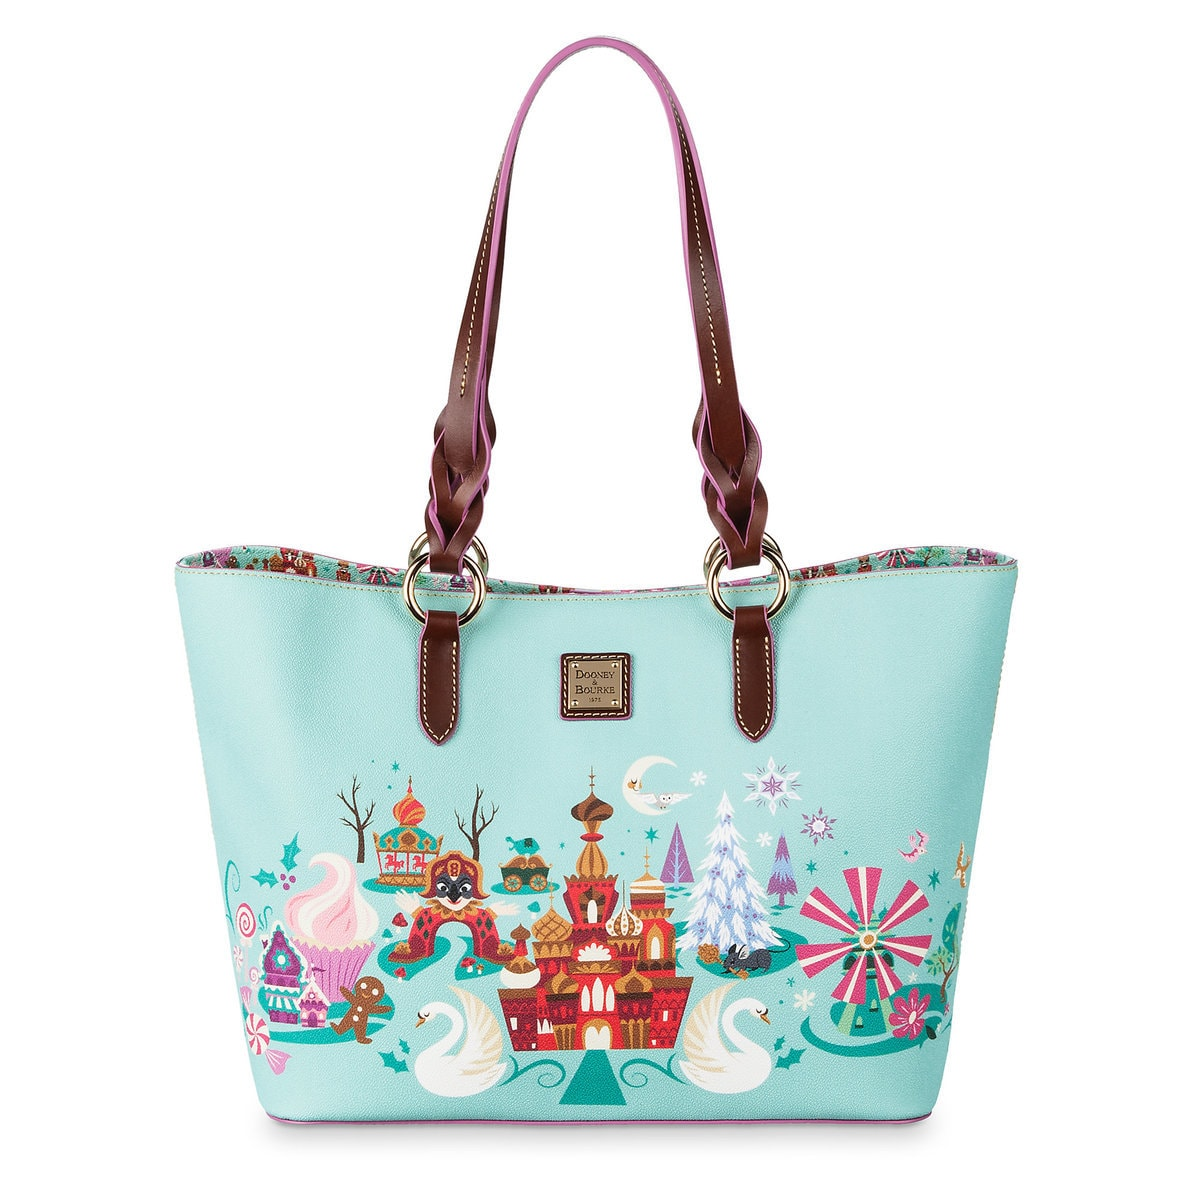 64b6693c6df376 Product Image of The Nutcracker and the Four Realms Tote by Dooney & Bourke  # 1